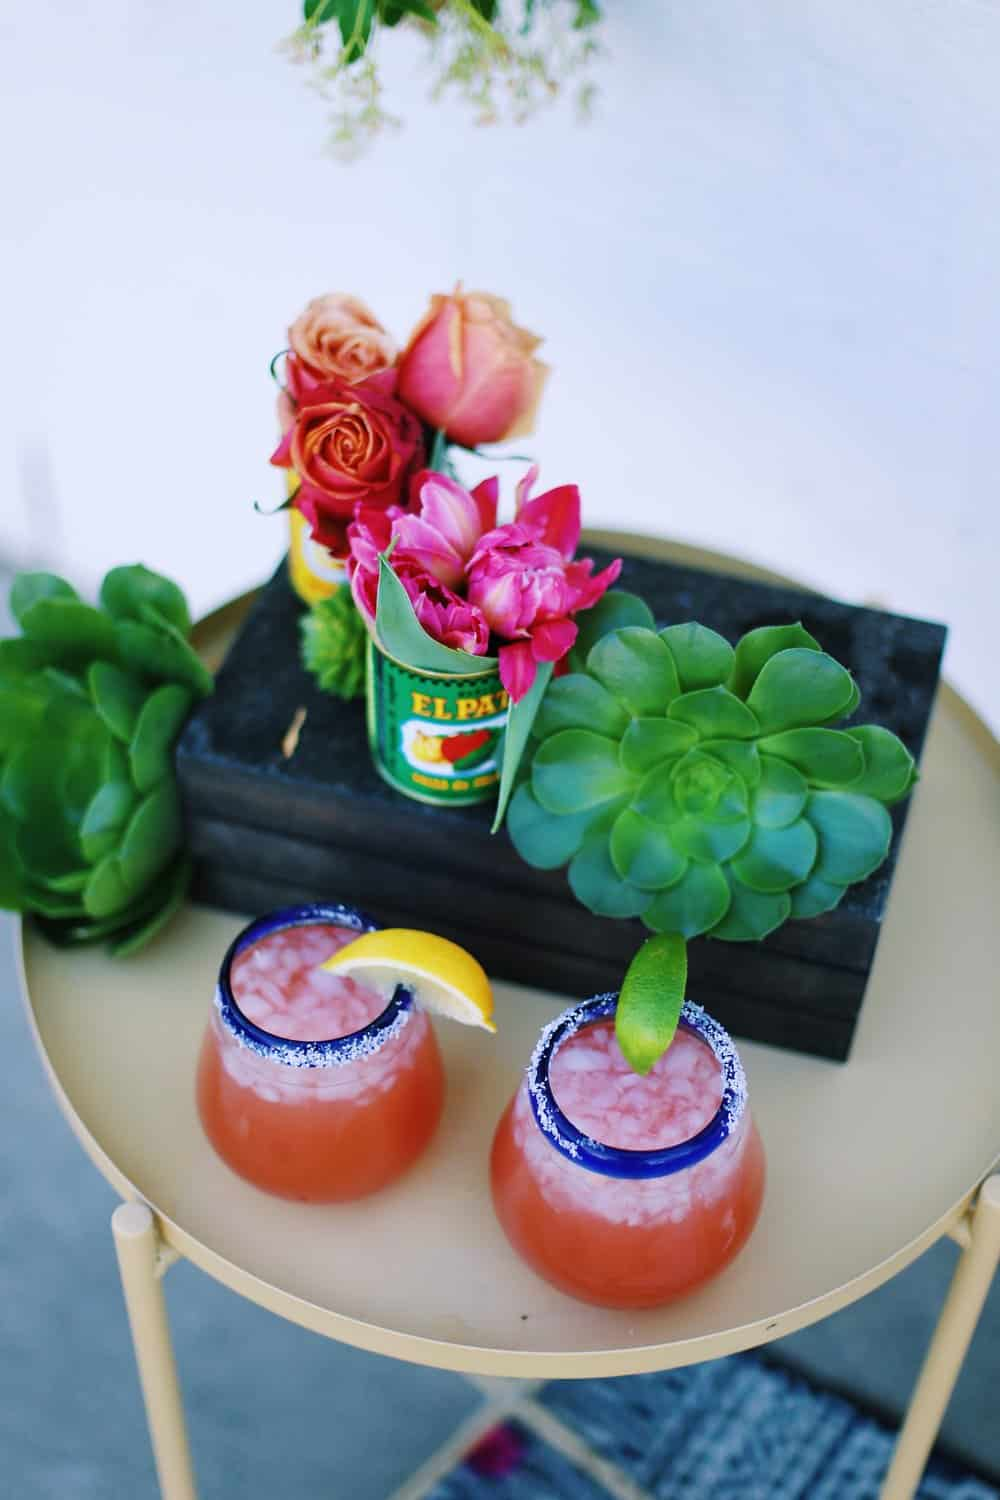 Two margaritas on the rocks with flowers in Mexican food cans on a beige table